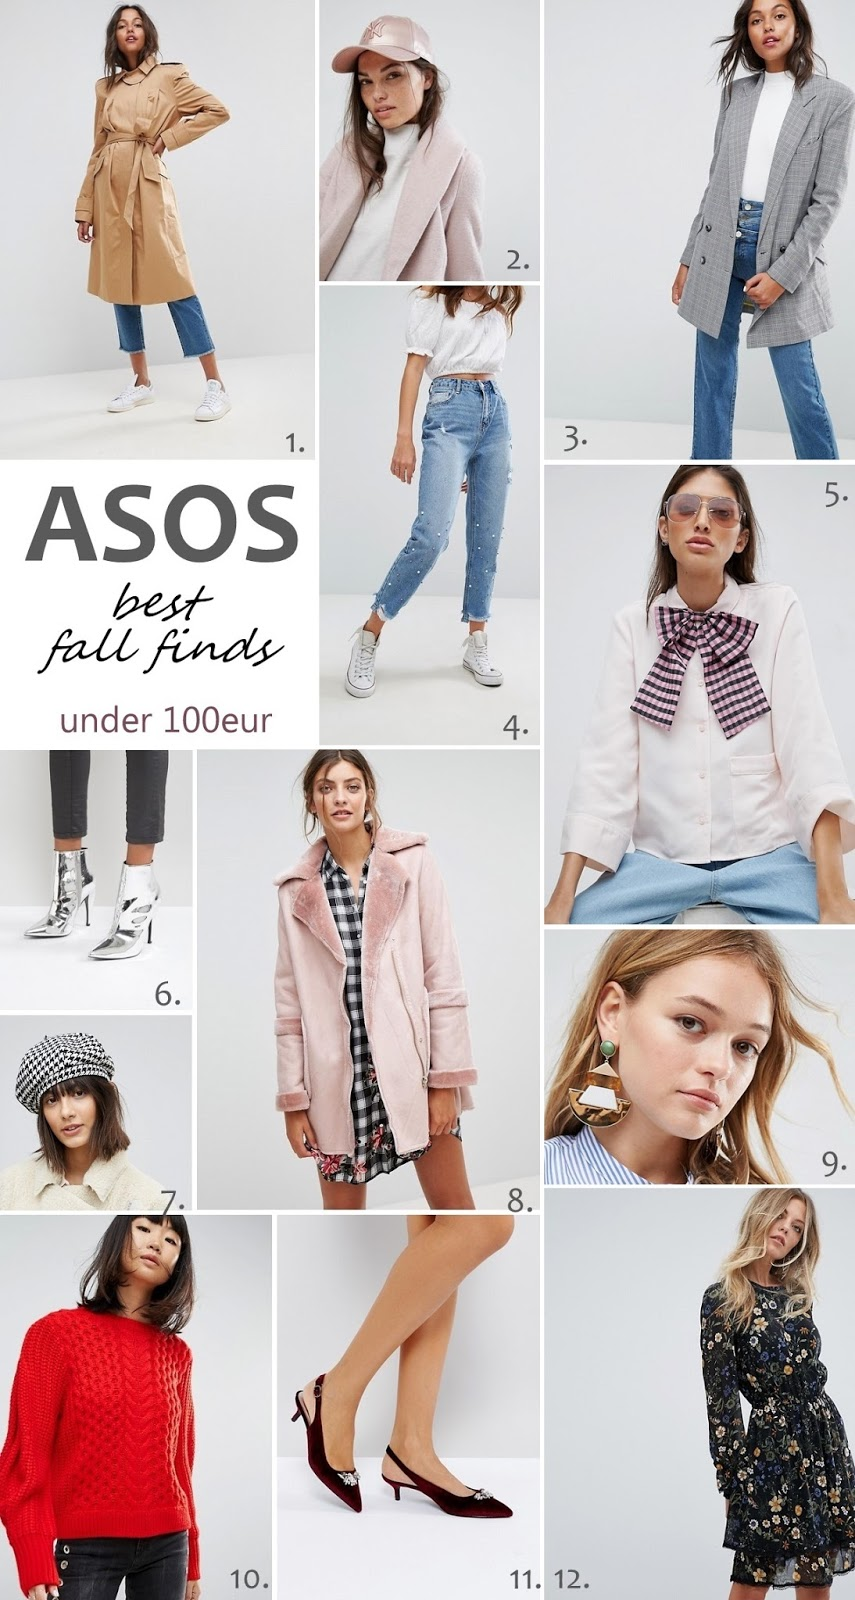 asos best fall fashion finds under 100 eur